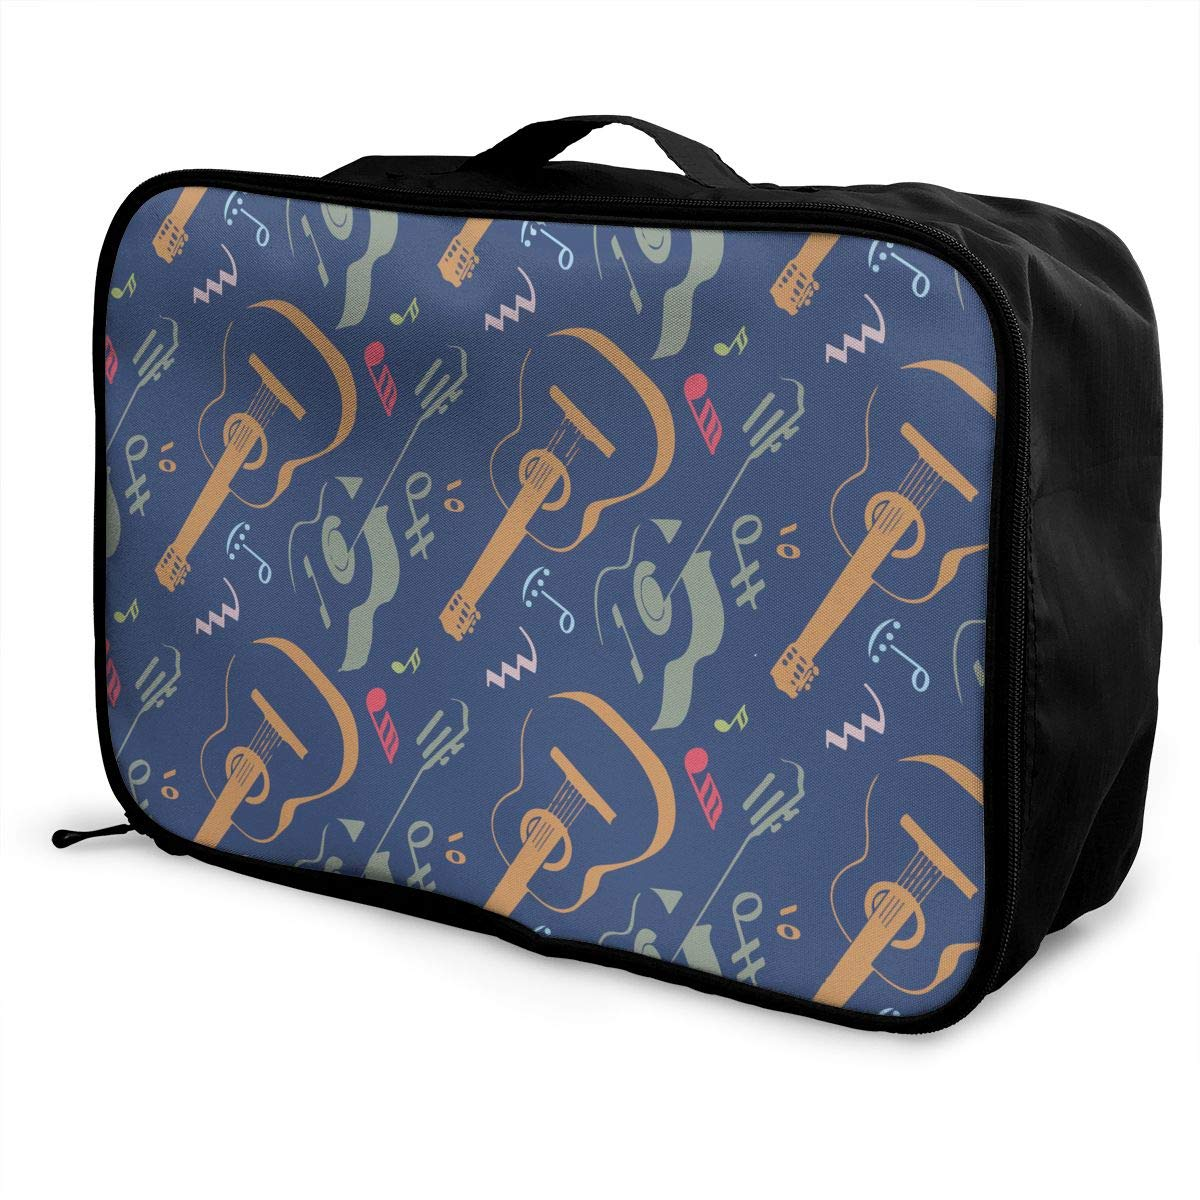 YueLJB Guitar Music Note Lightweight Large Capacity Portable Luggage Bag Travel Duffel Bag Storage Carry Luggage Duffle Tote Bag